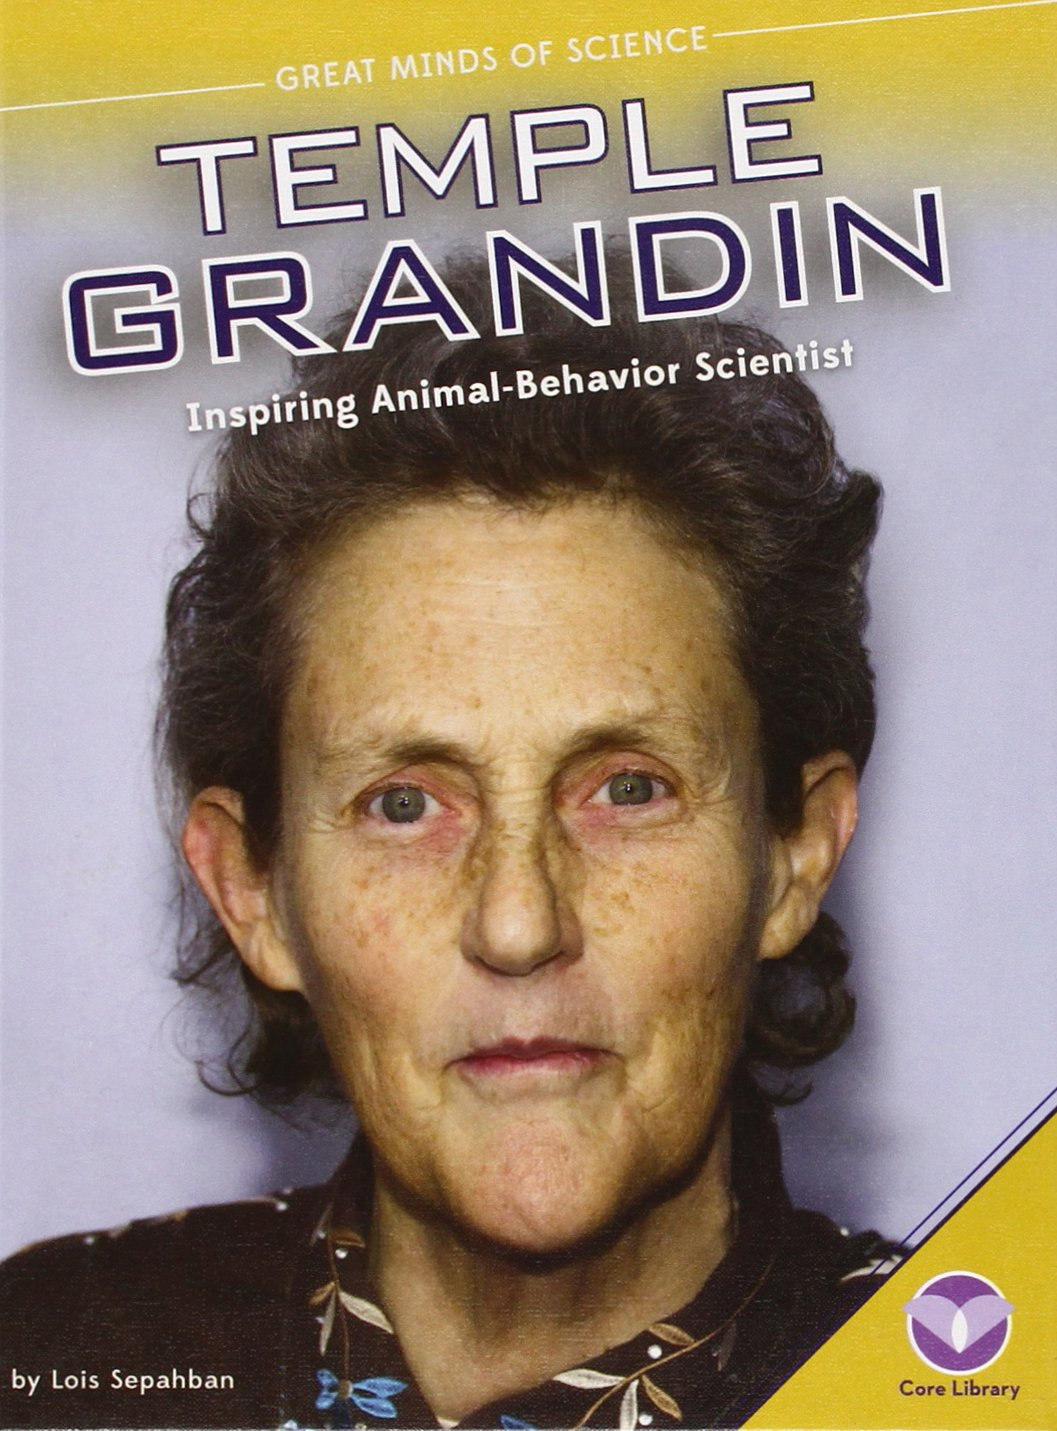 Temple Grandin: Inspiring Animal-behavior Scientist (Great Minds of Science)